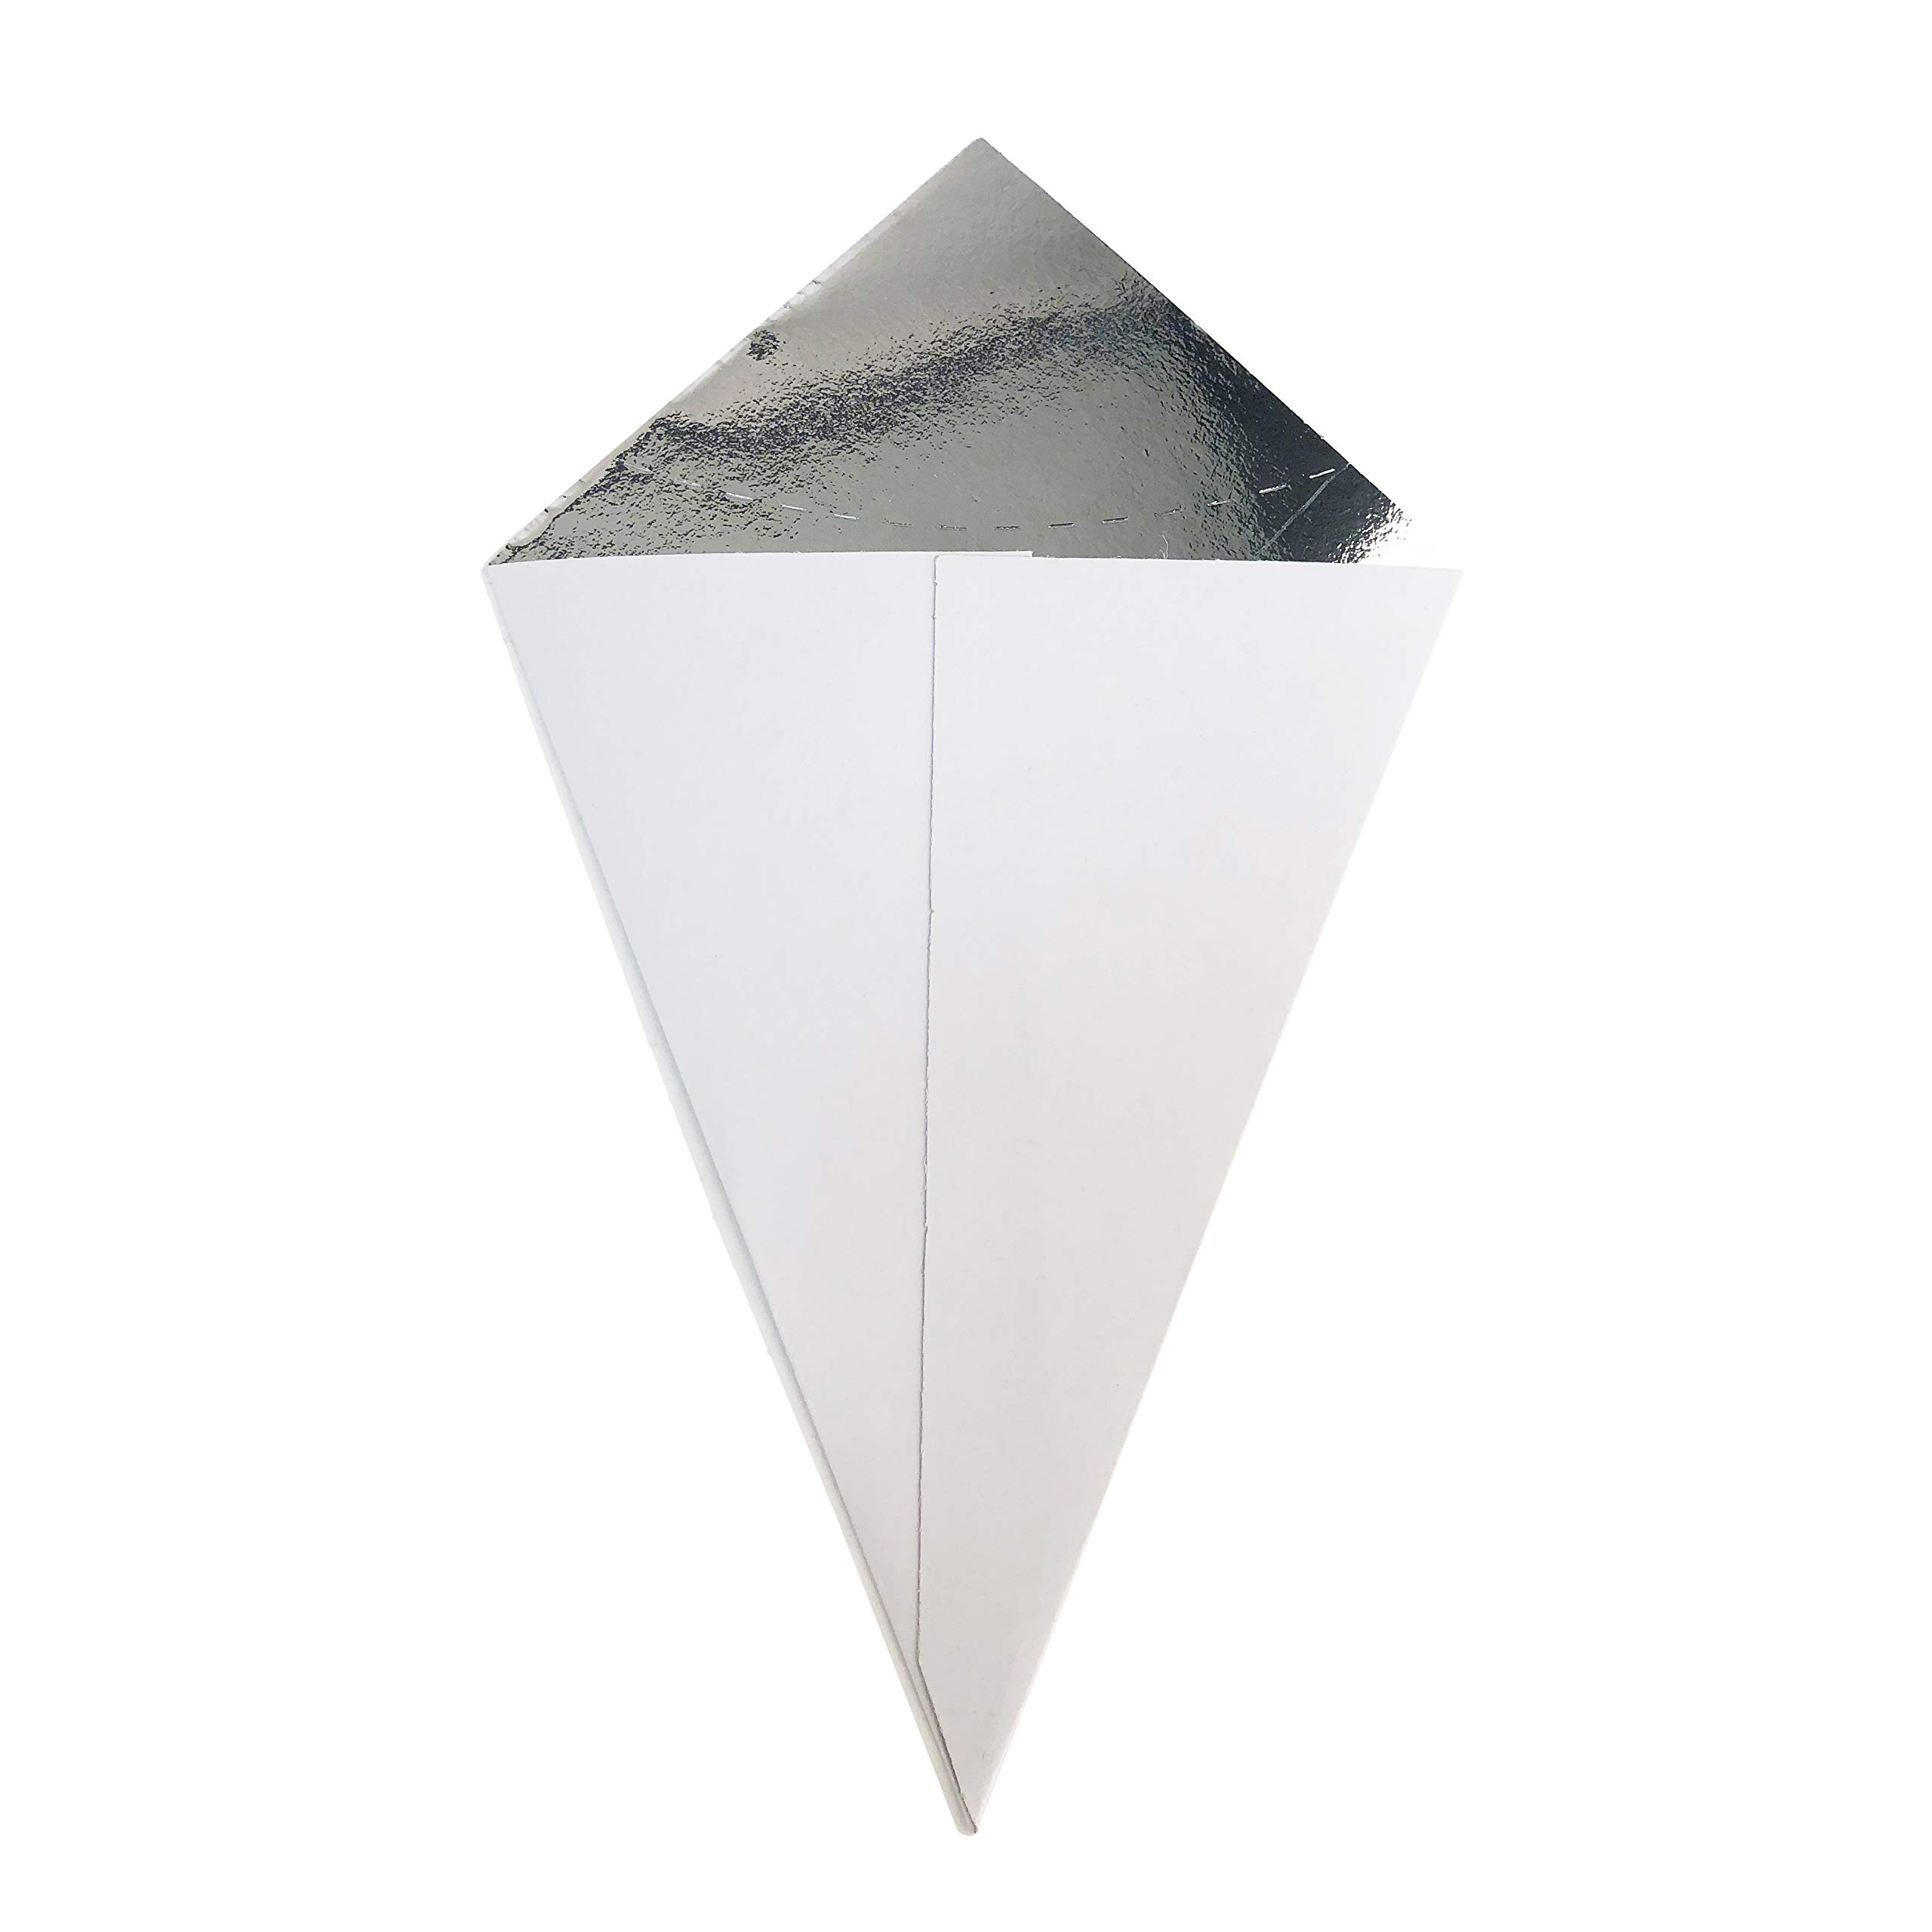 12'' X 4.5'' White, Take Away Paper Cone, Clipper Mill by GET 4-CC500-WH (Pack of 500) (Metal Cone 4-21644 Sold Separately)